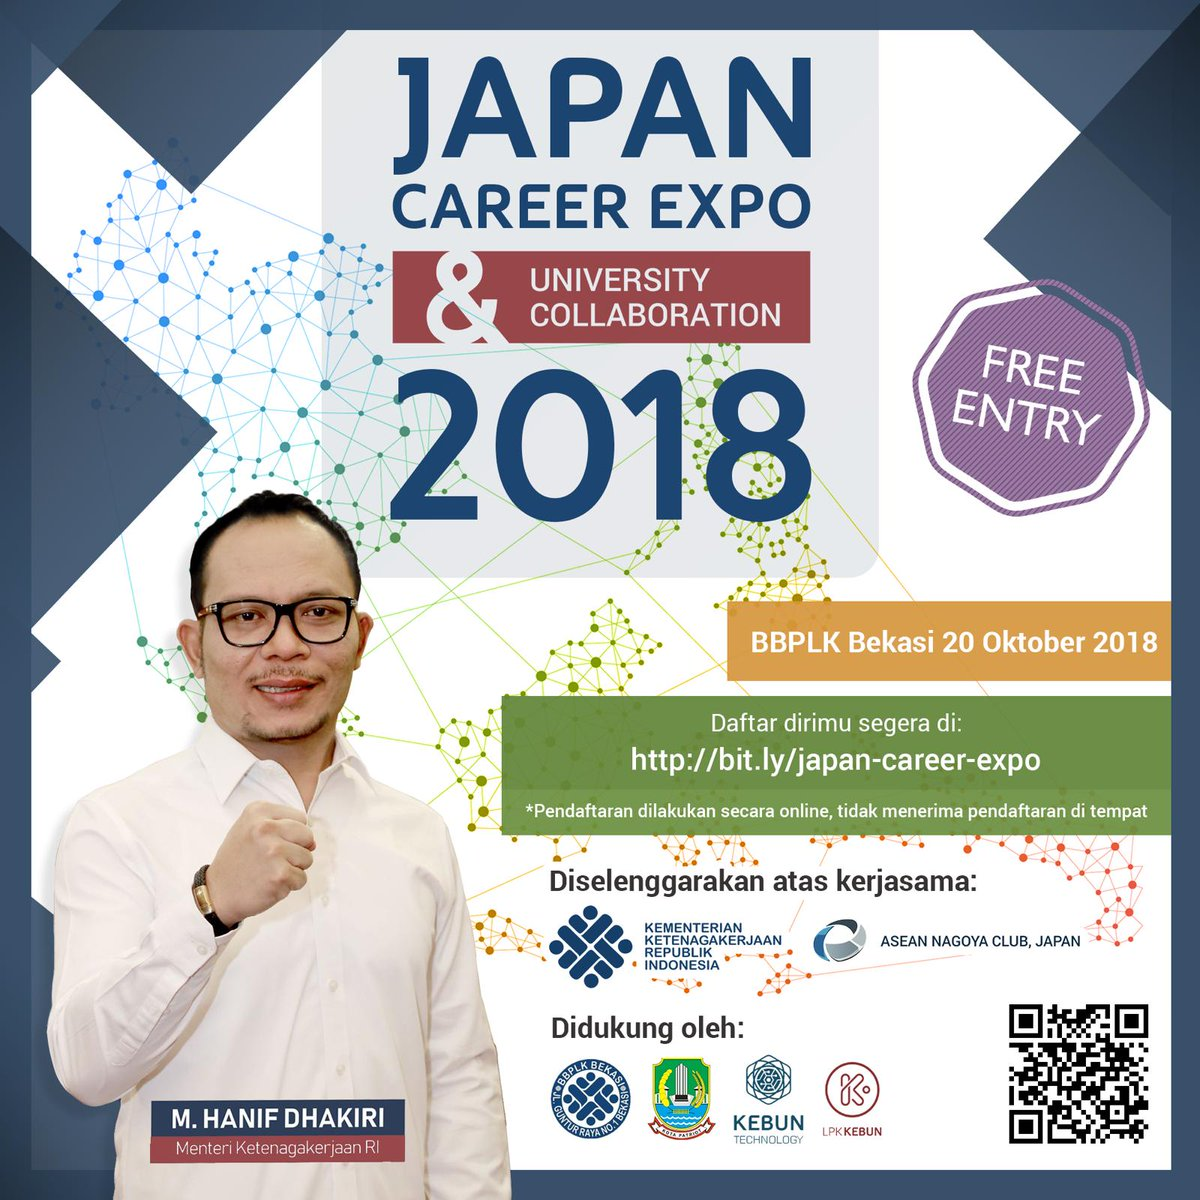 japan-career-expo-university-collaboration-2018